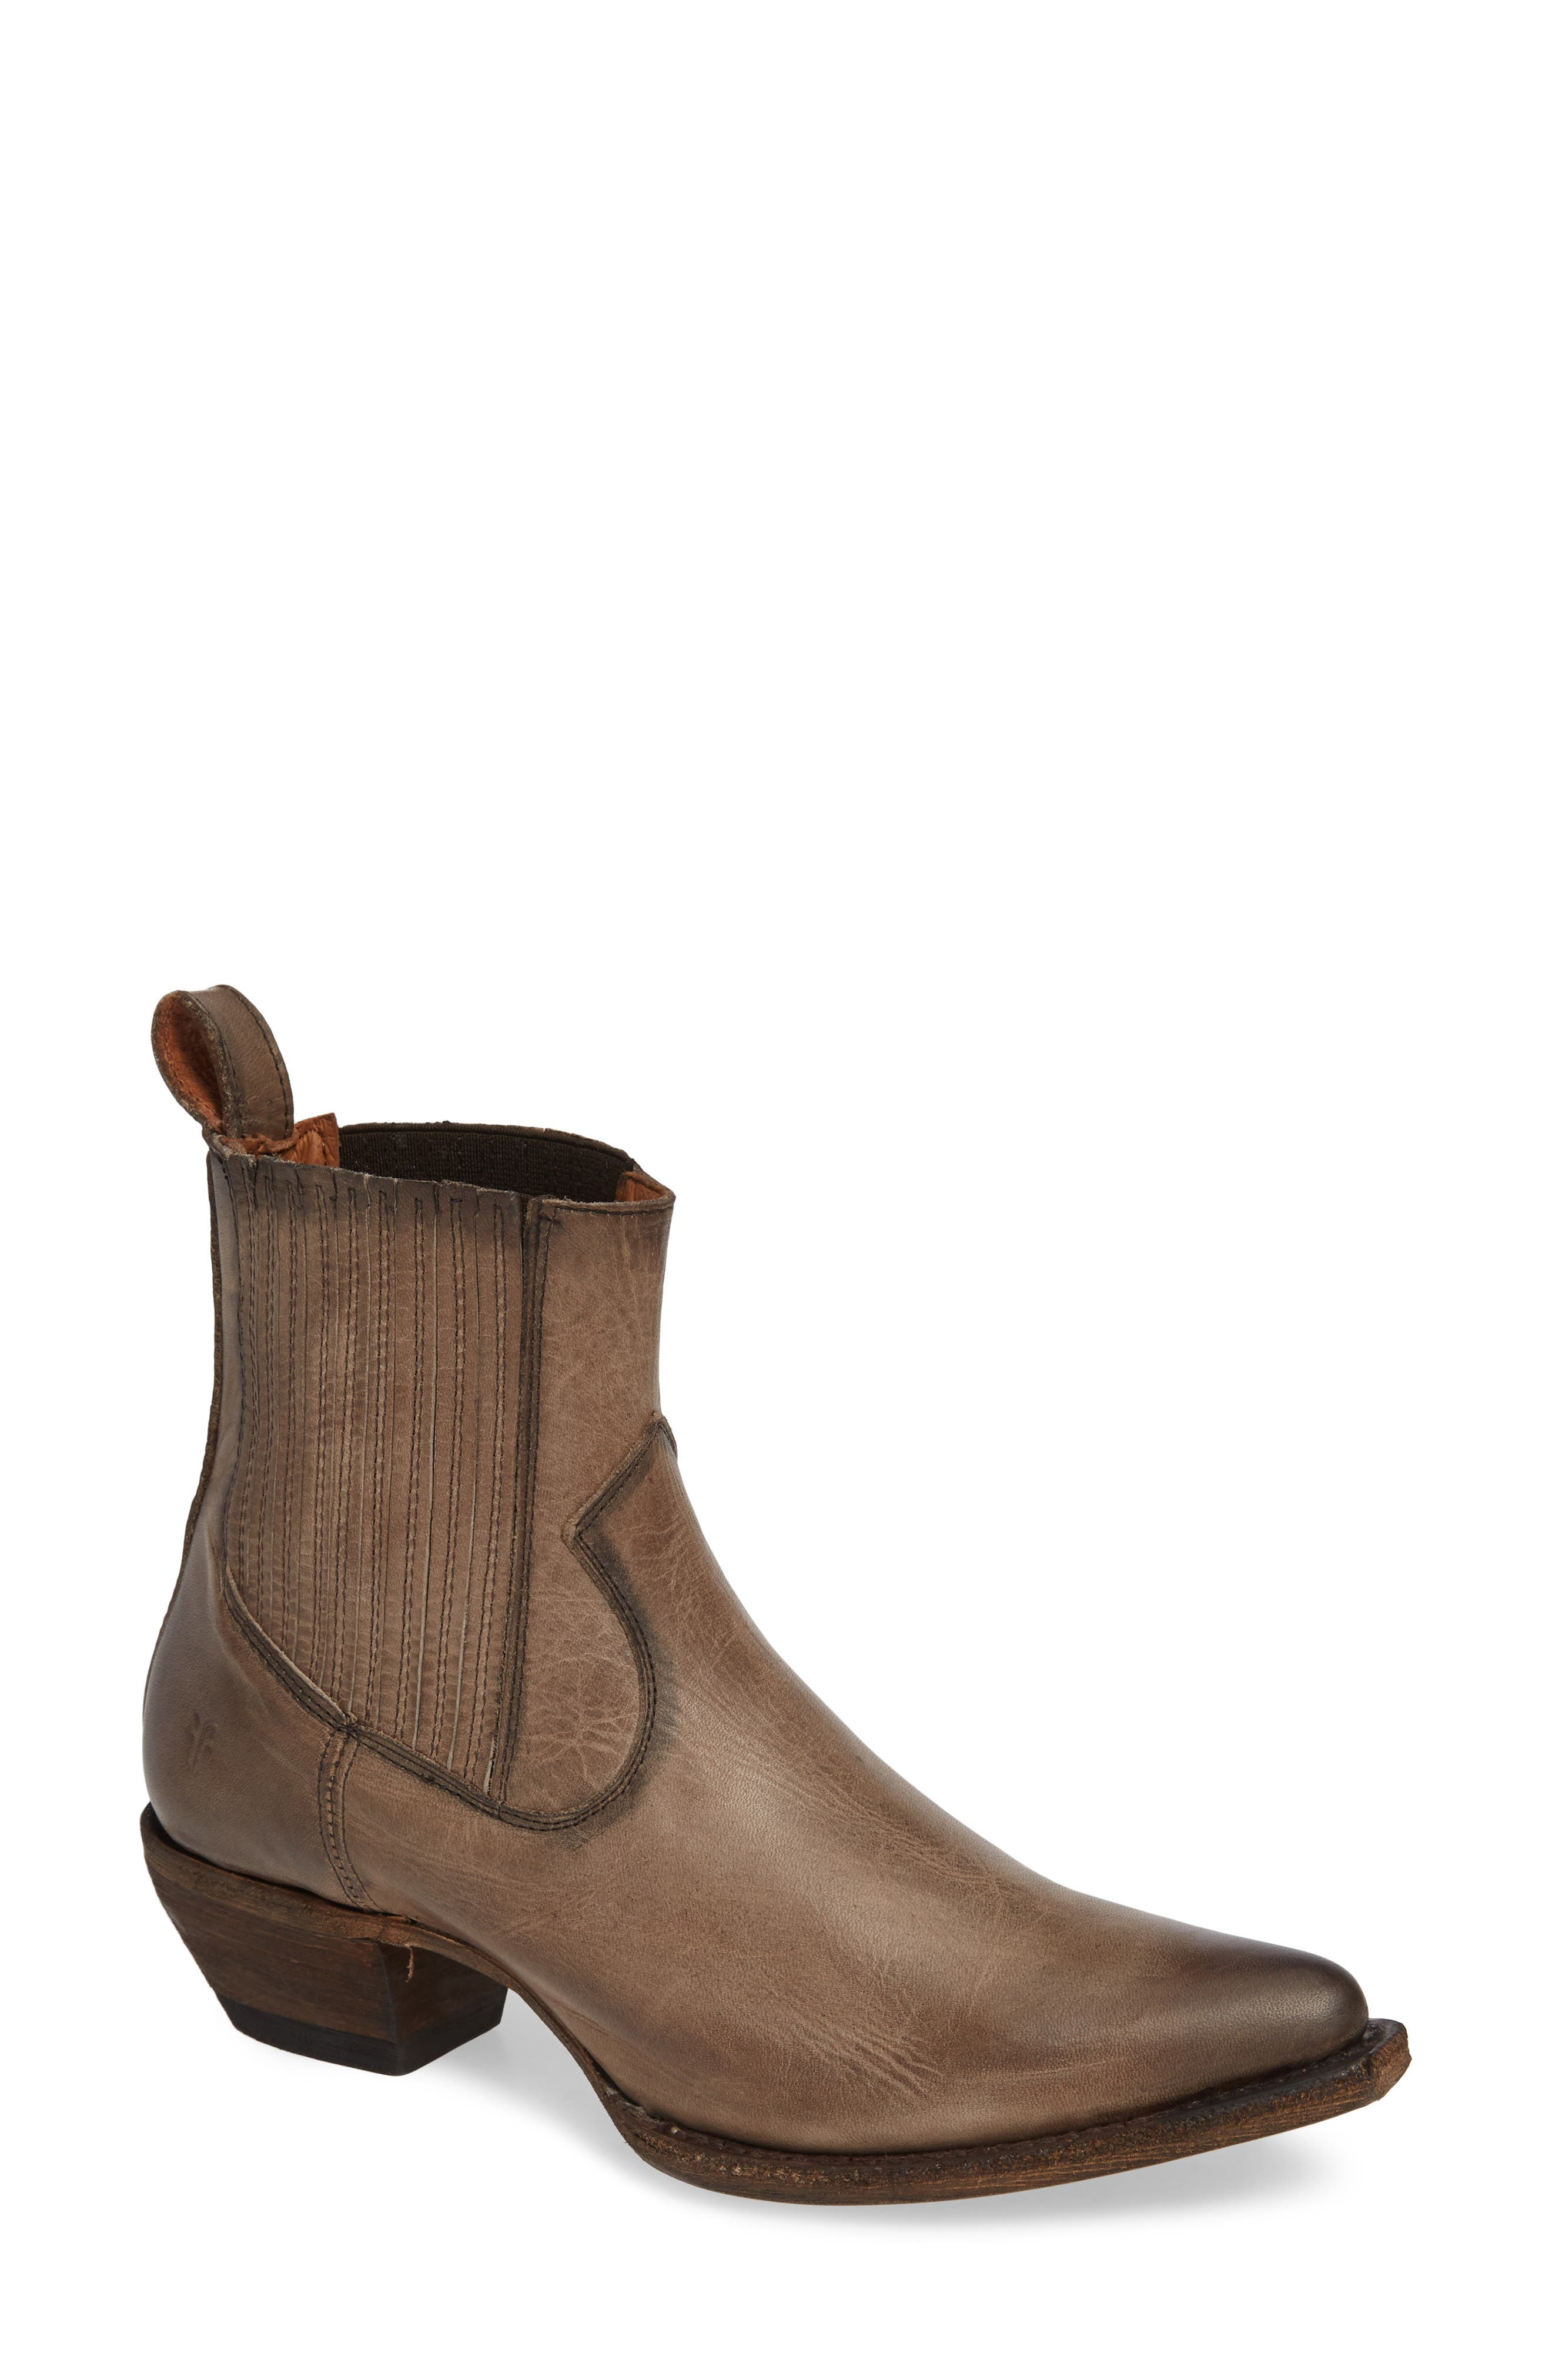 Sacha Western Bootie,                             Main thumbnail 1, color,                             STONE LEATHER